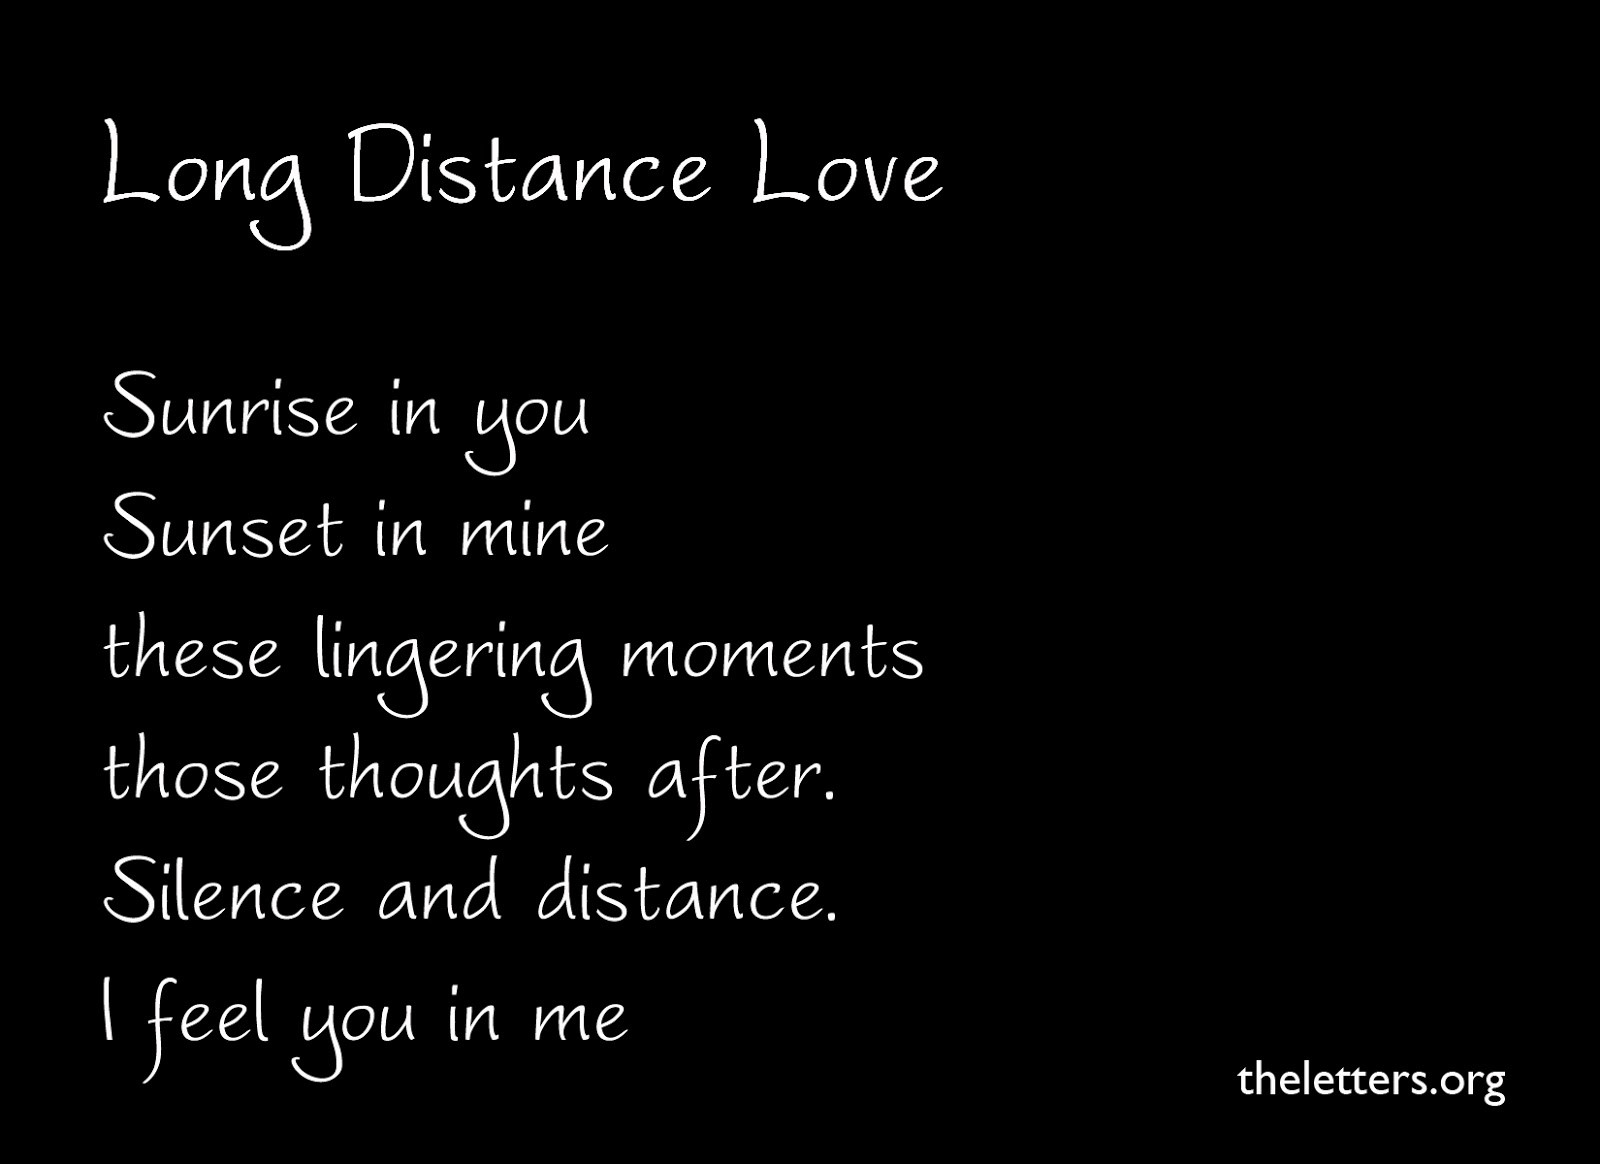 Love Quote For Long Distance Relationship  Cute Long Distance Love Quotes For Him QuotesGram